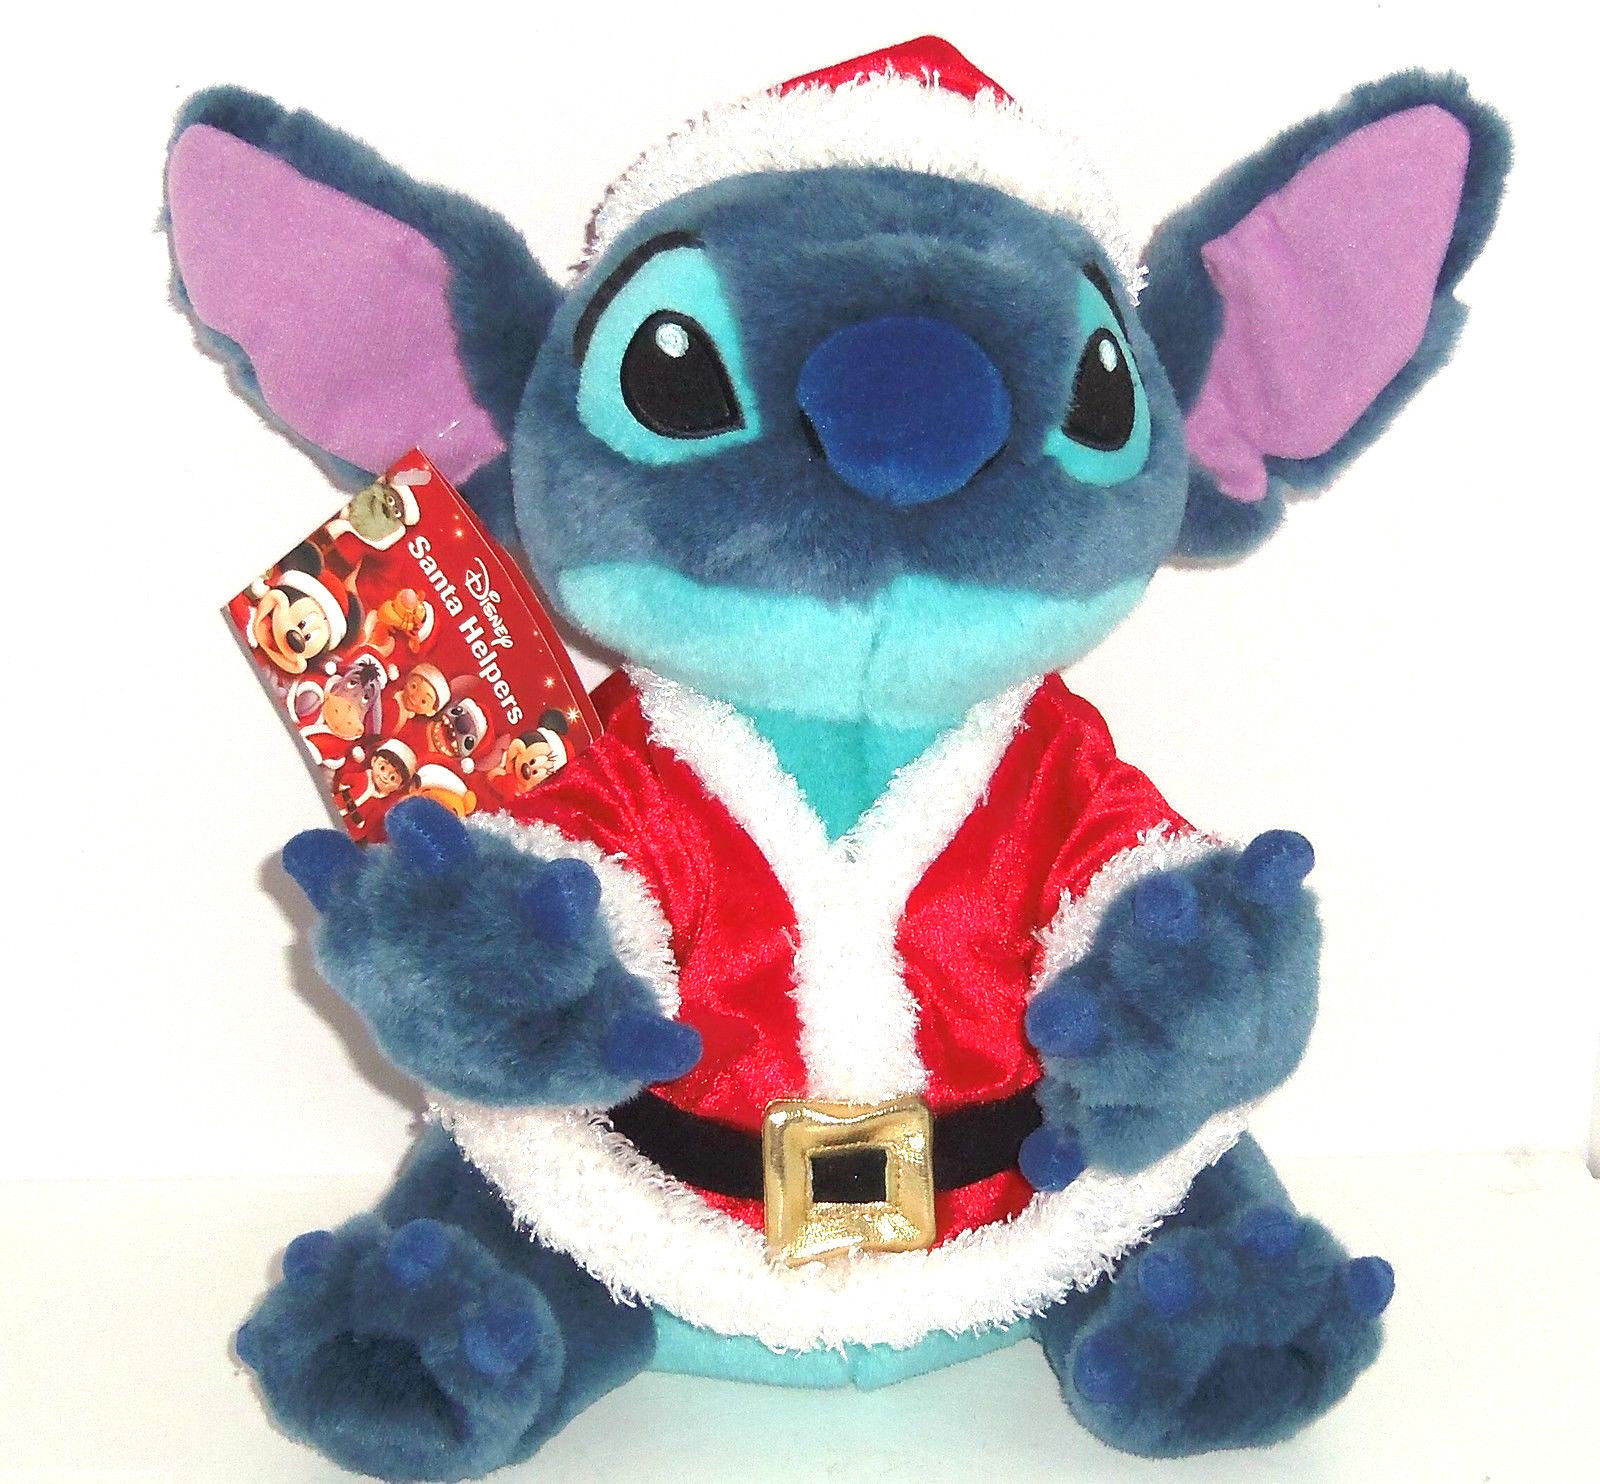 Christmas Toys Disney : Disney store stitch plush santa helpers suit christmas toy